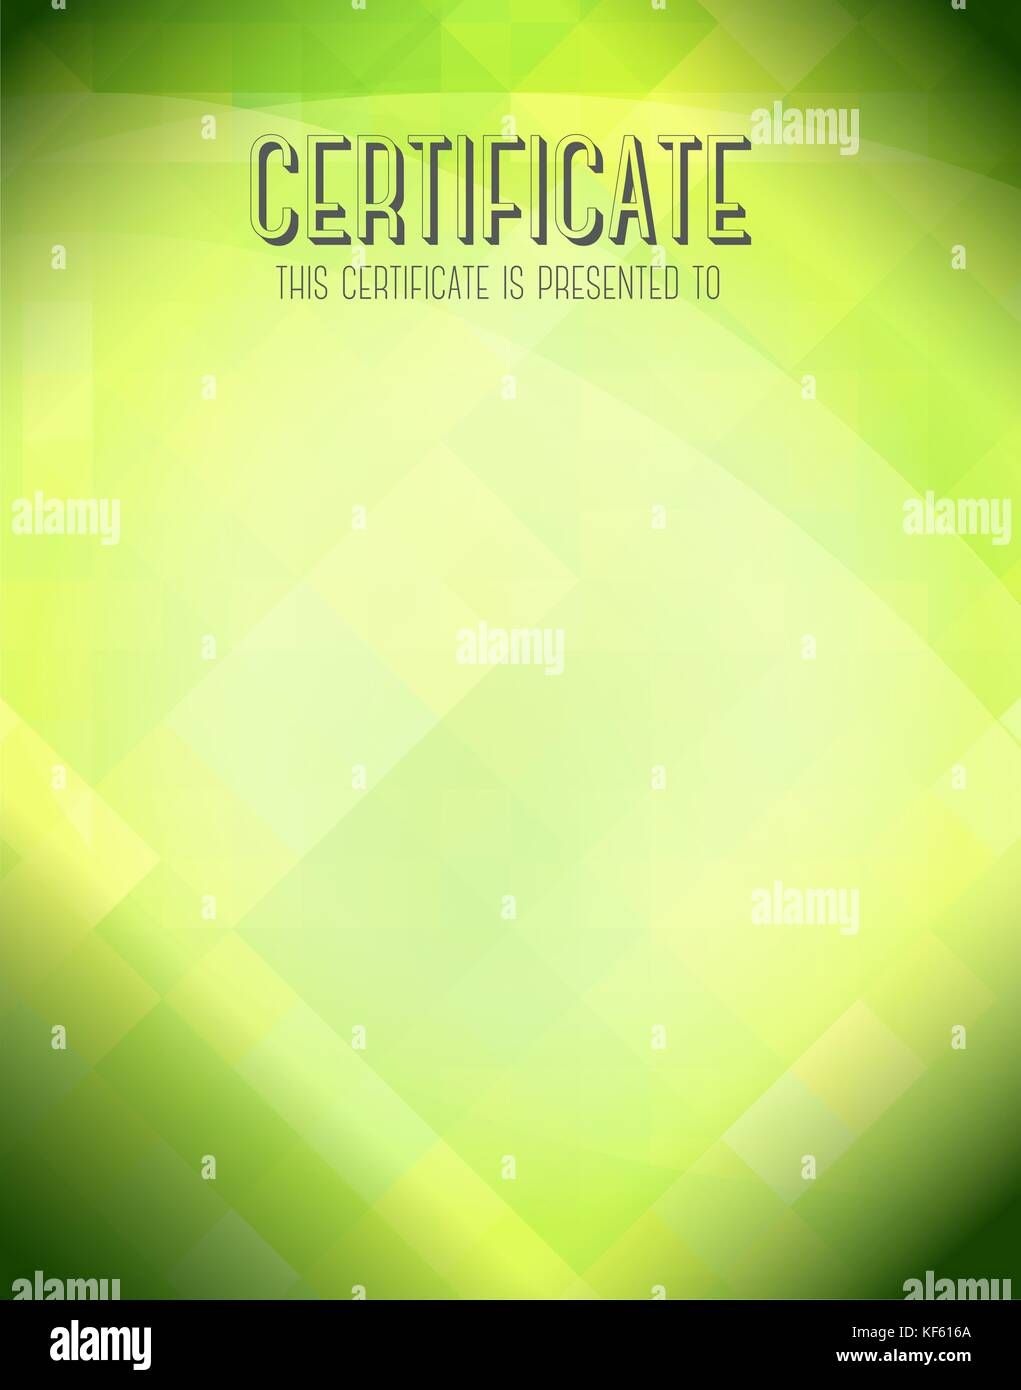 Certificate template with green background stock vector art certificate template with green background yelopaper Image collections